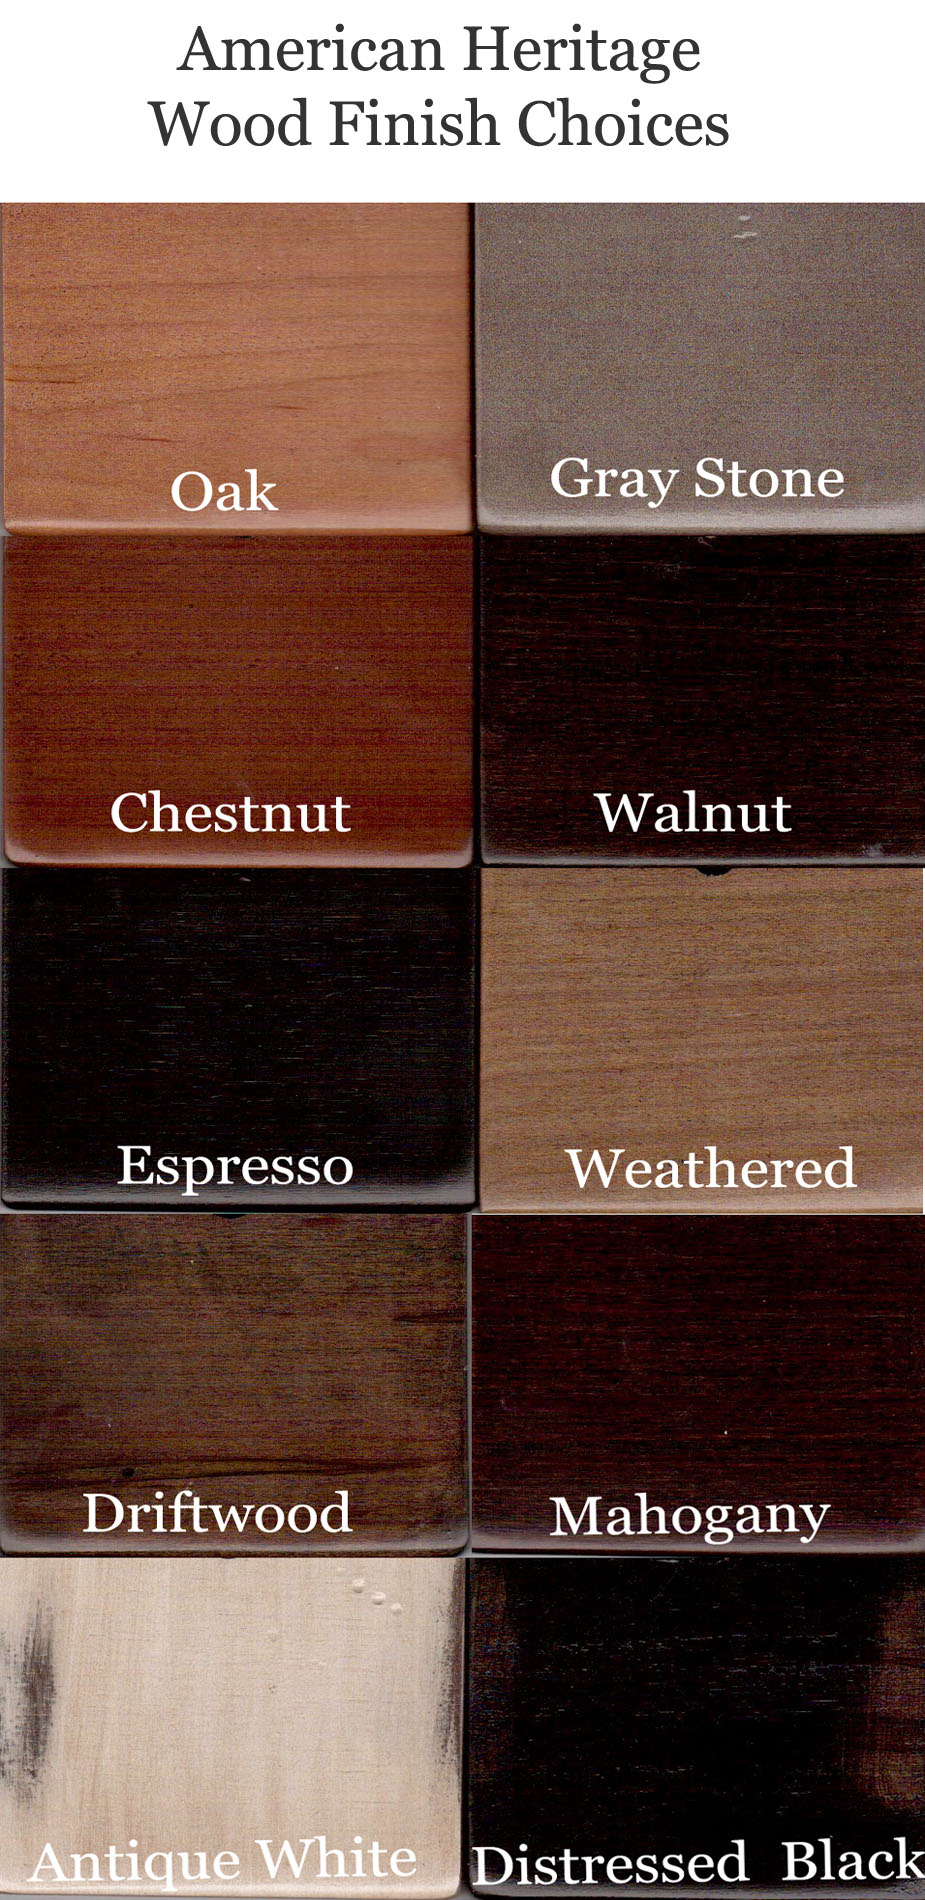 American Heritage Wood Finish Options